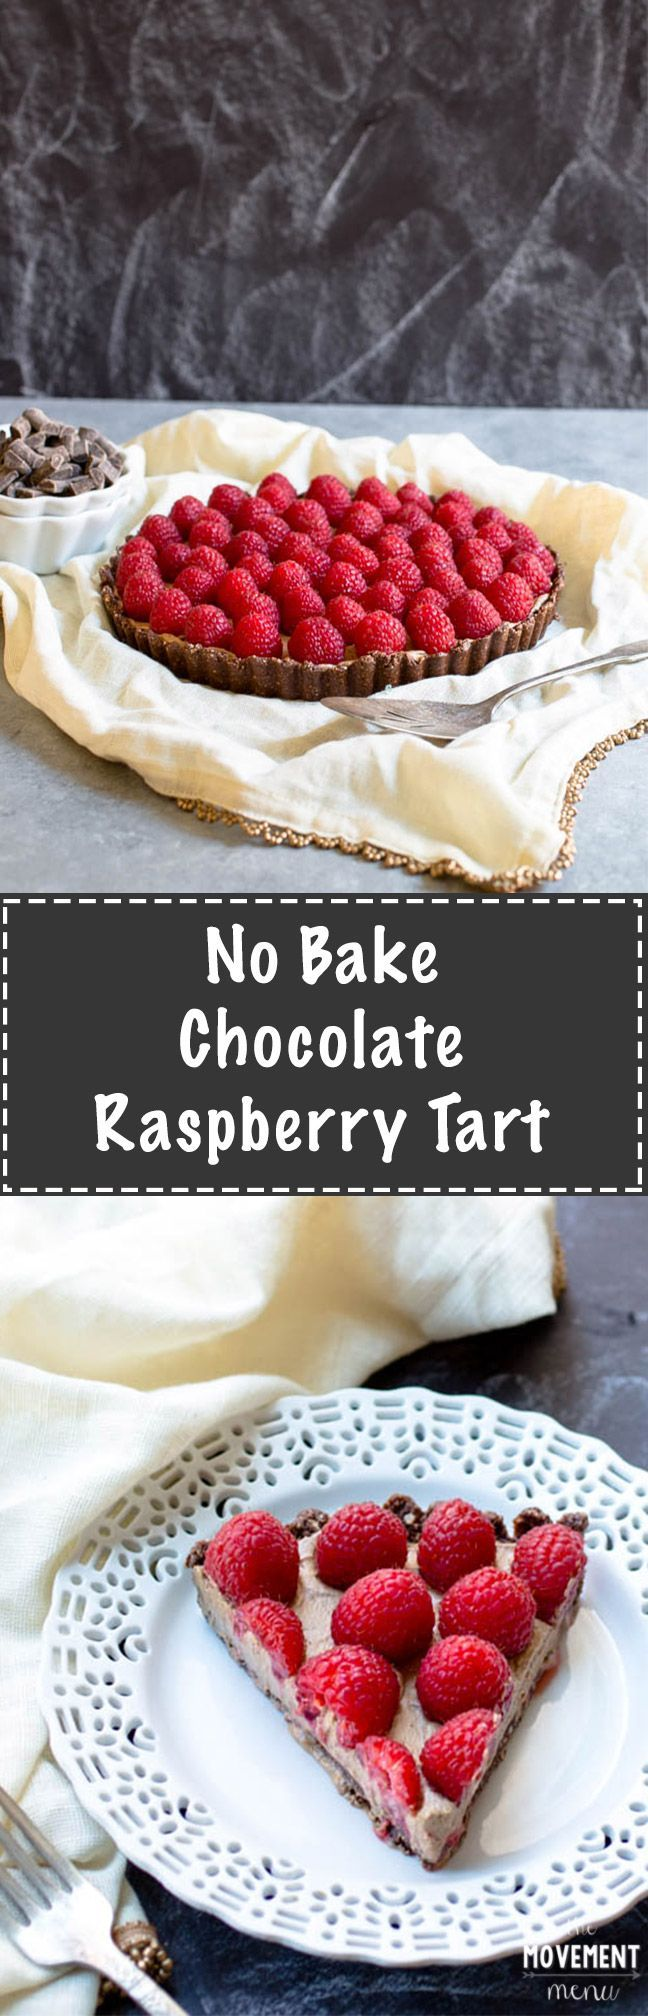 This no bake creamy chocolate raspberry tart is insanely delicious. Full of rich and decadent chocolate filling and topped off with fresh raspberries! TheMovementMenu.com